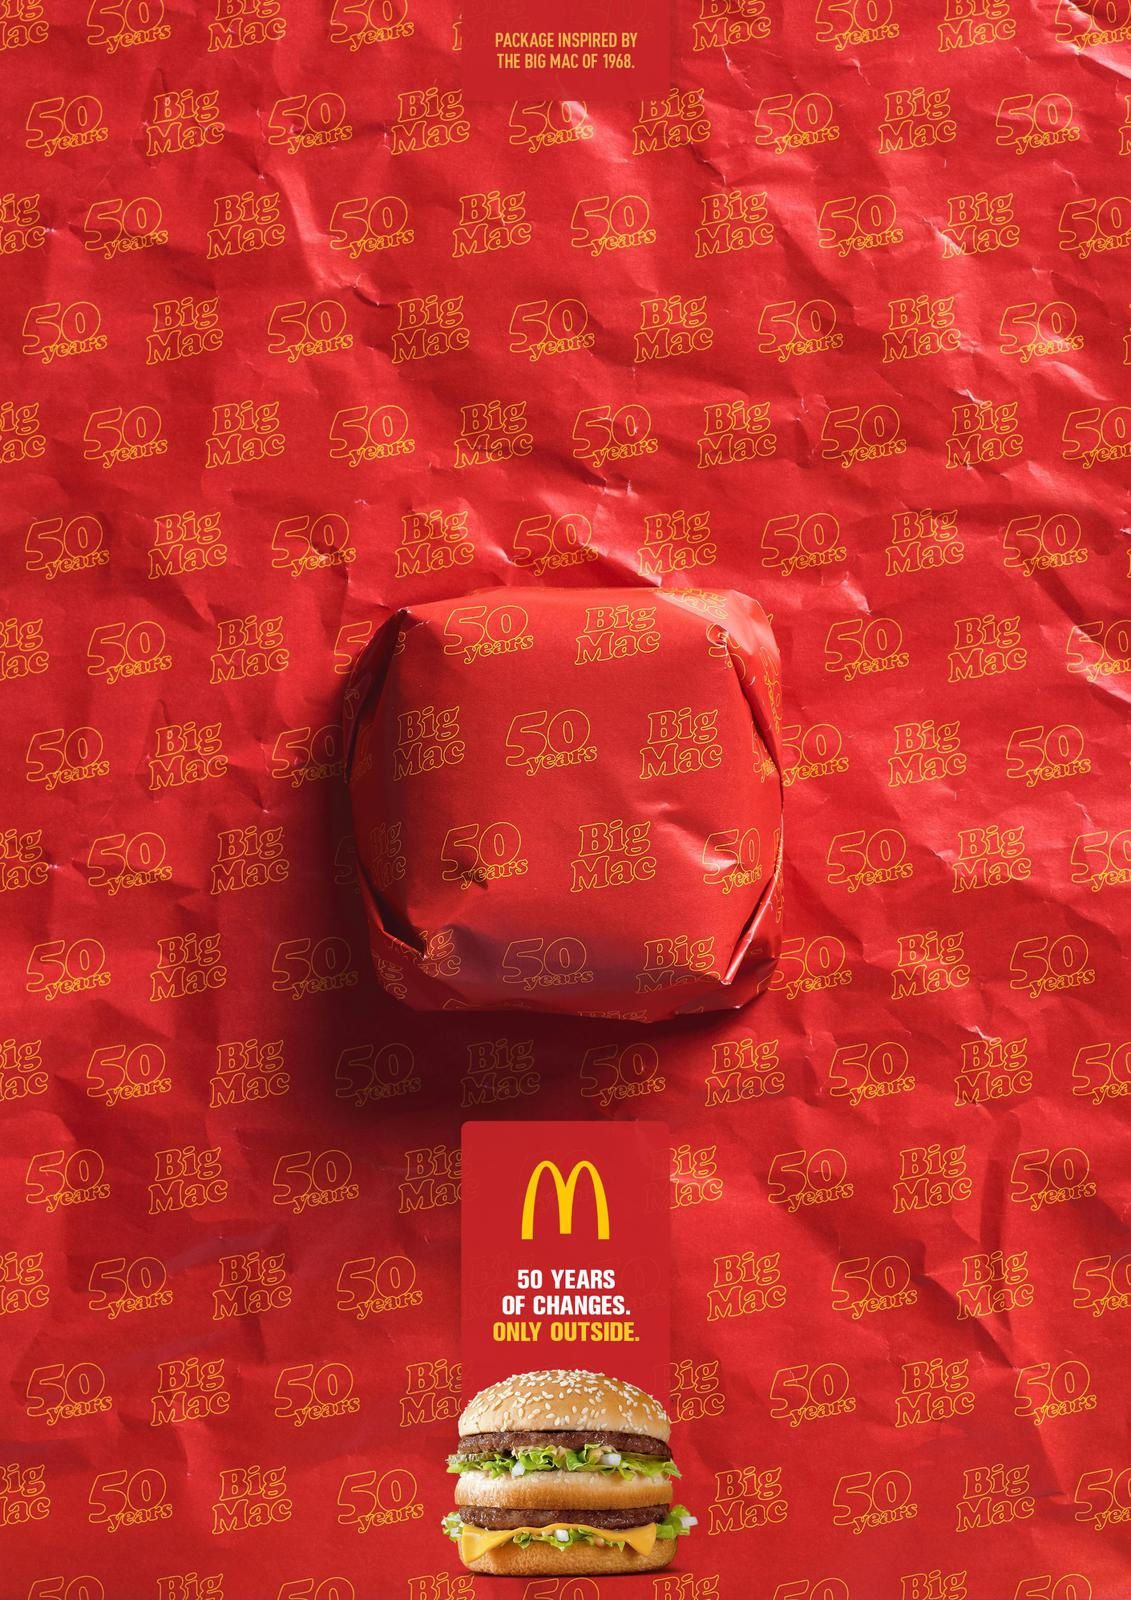 """Big Mac - Packed in History - 1968 I McDonald's : """"Package inspired by the Big Mac of 1968. 50 years of changes. Only outside"""""""